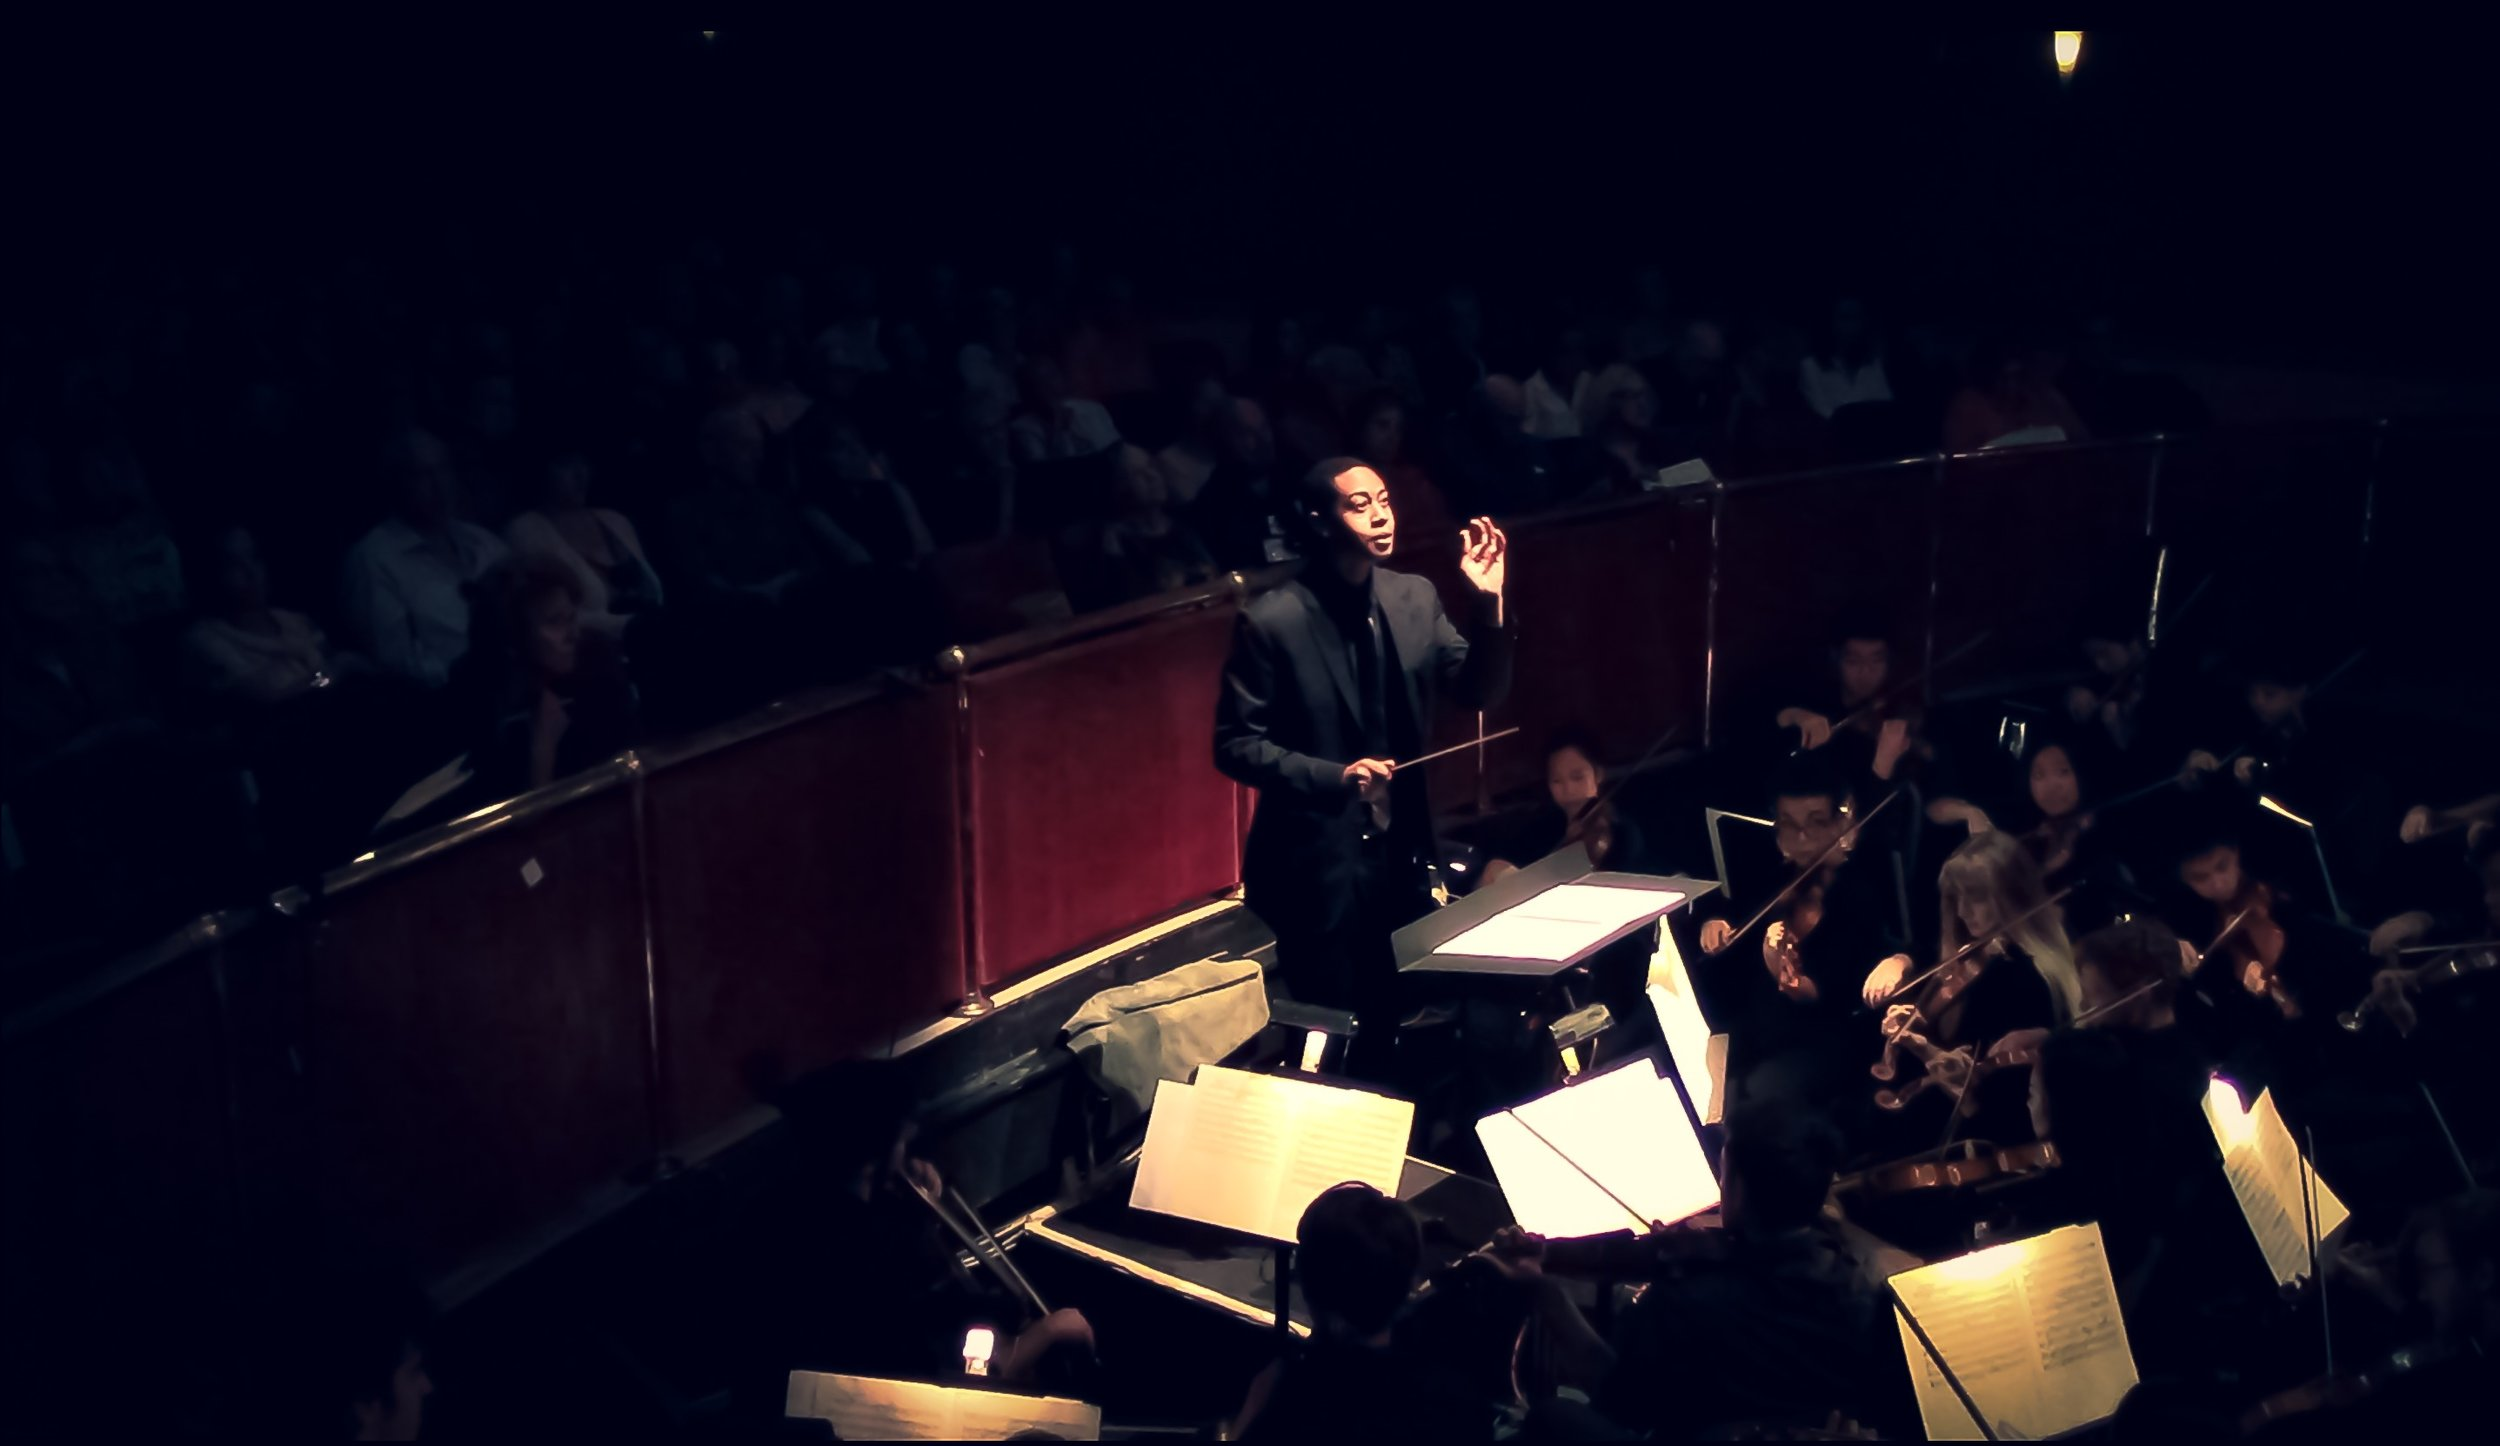 Welcome to the website of American Conductor William Garfield Walker. - To learn more, scroll downwards